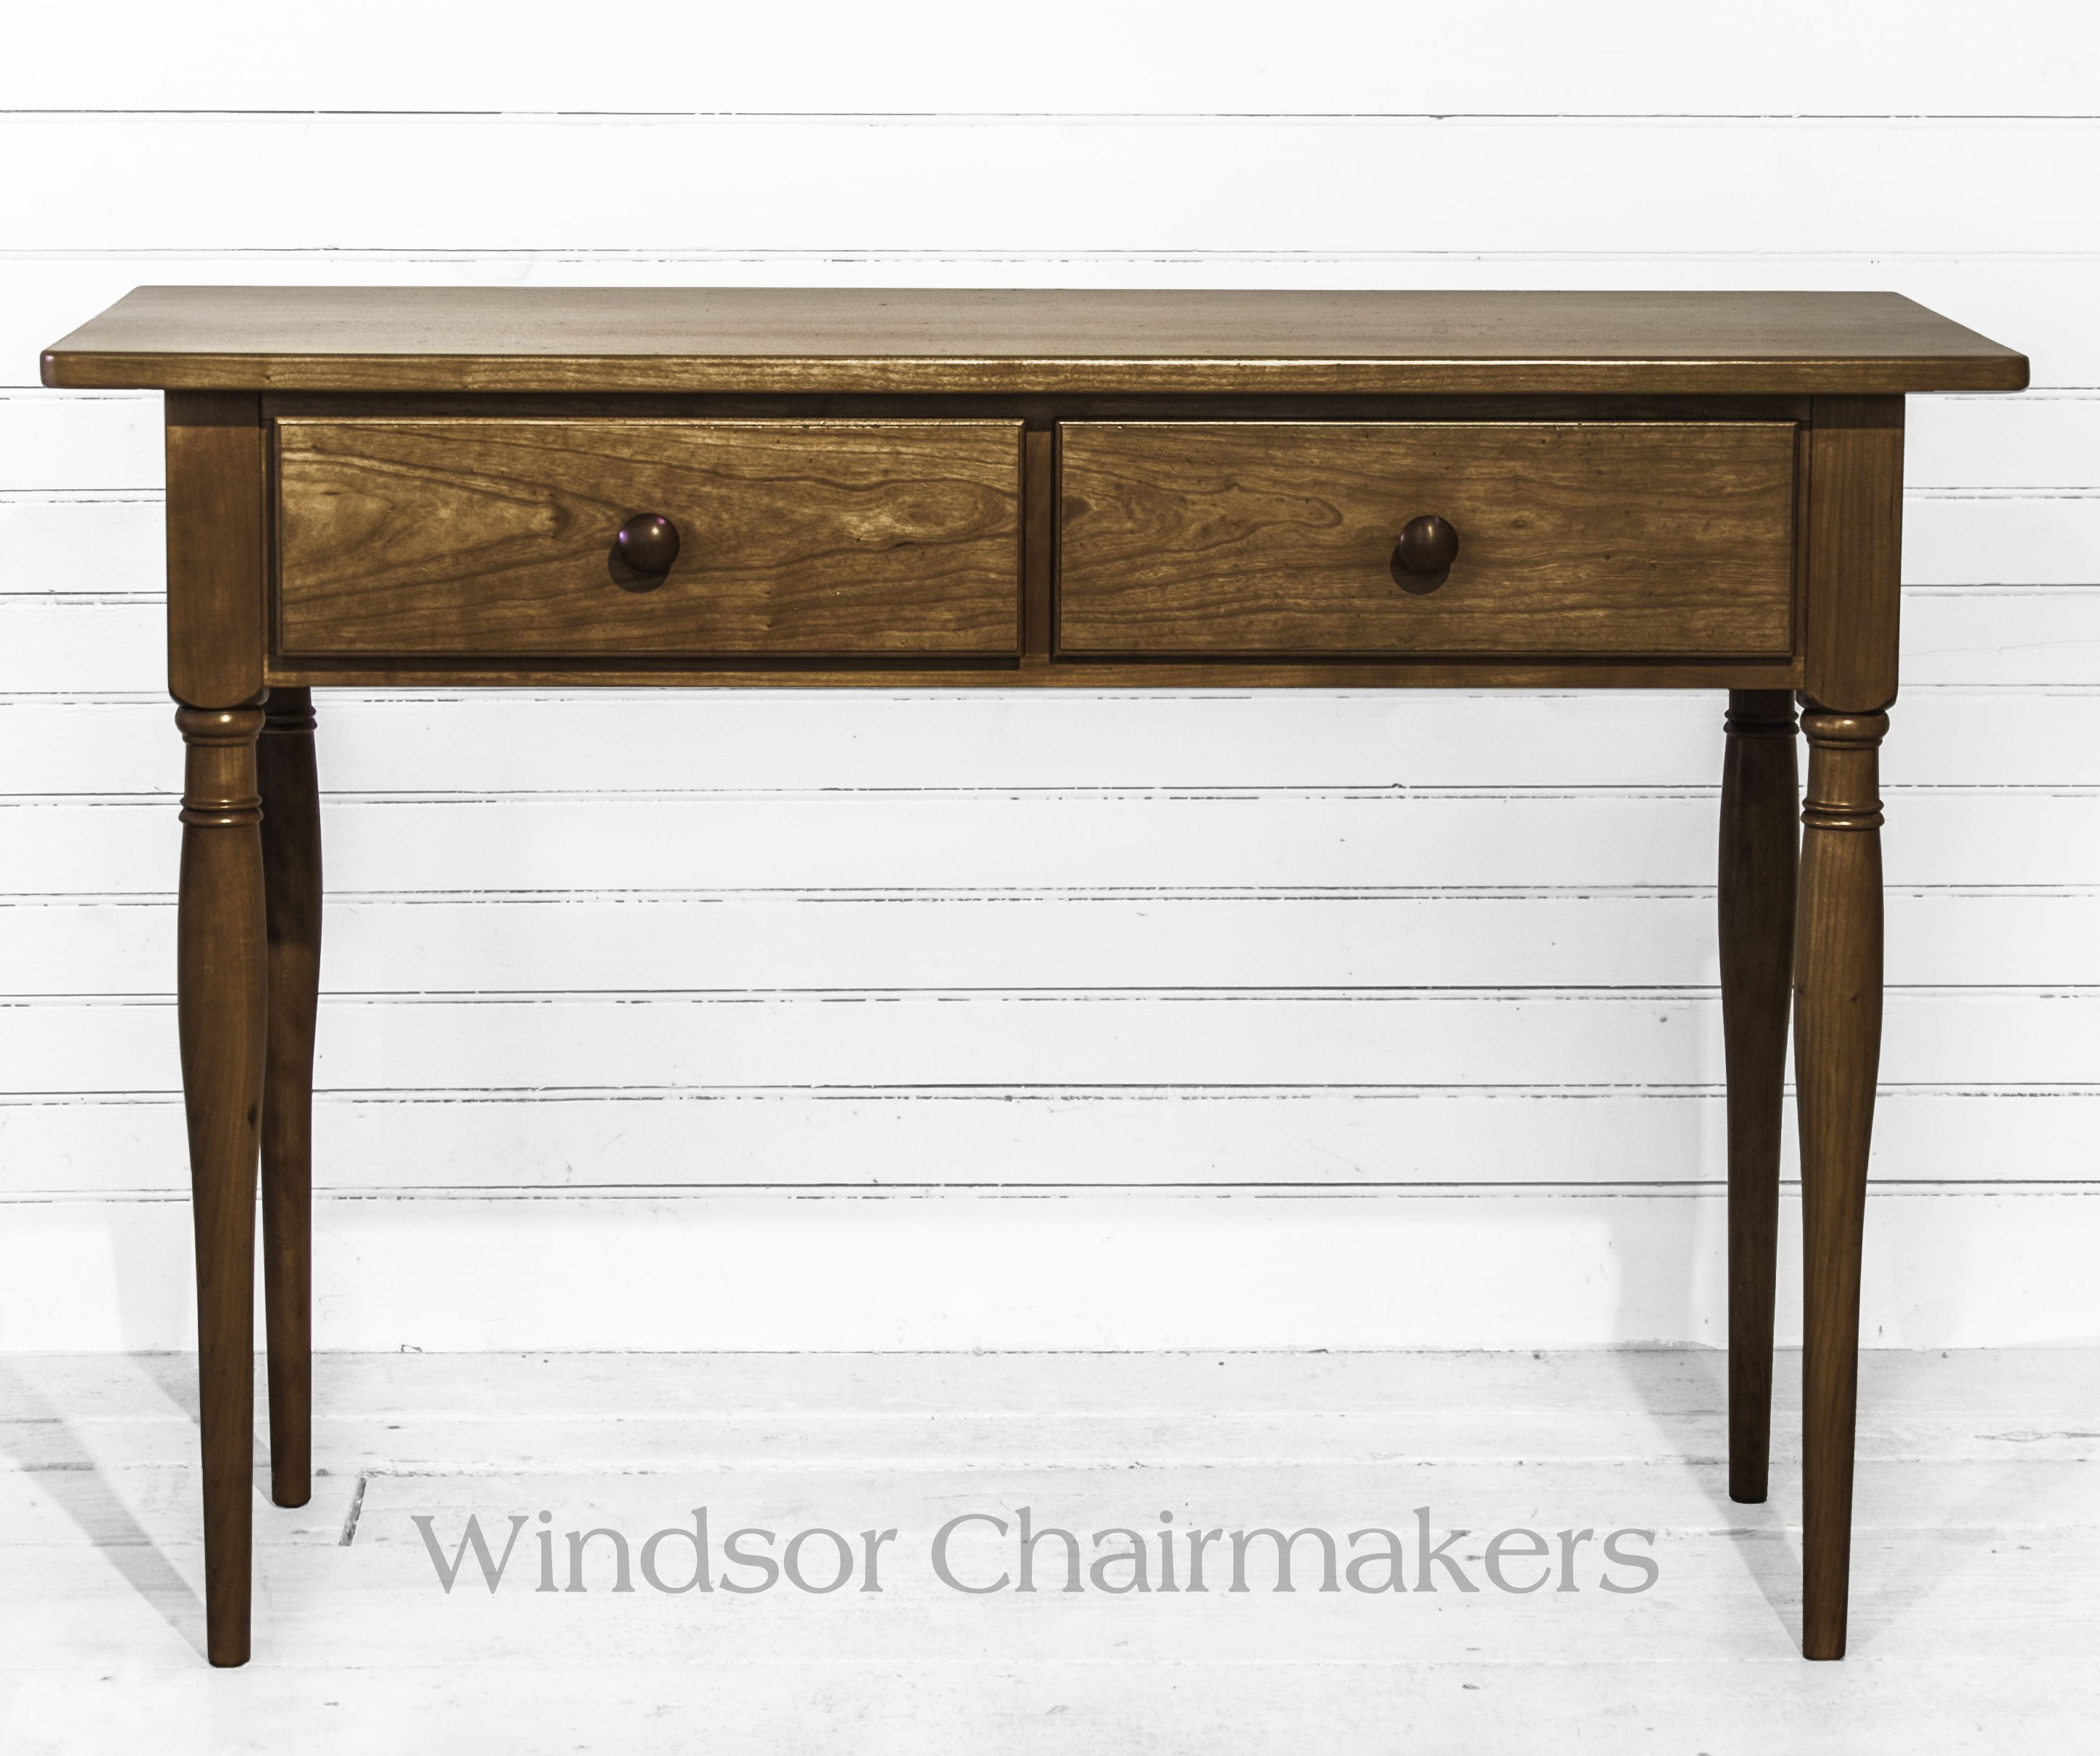 Small hall console table 42 x 16 x 29 high wood choices tiger small hall console table x x high wood choices tiger maple or cherry geotapseo Choice Image